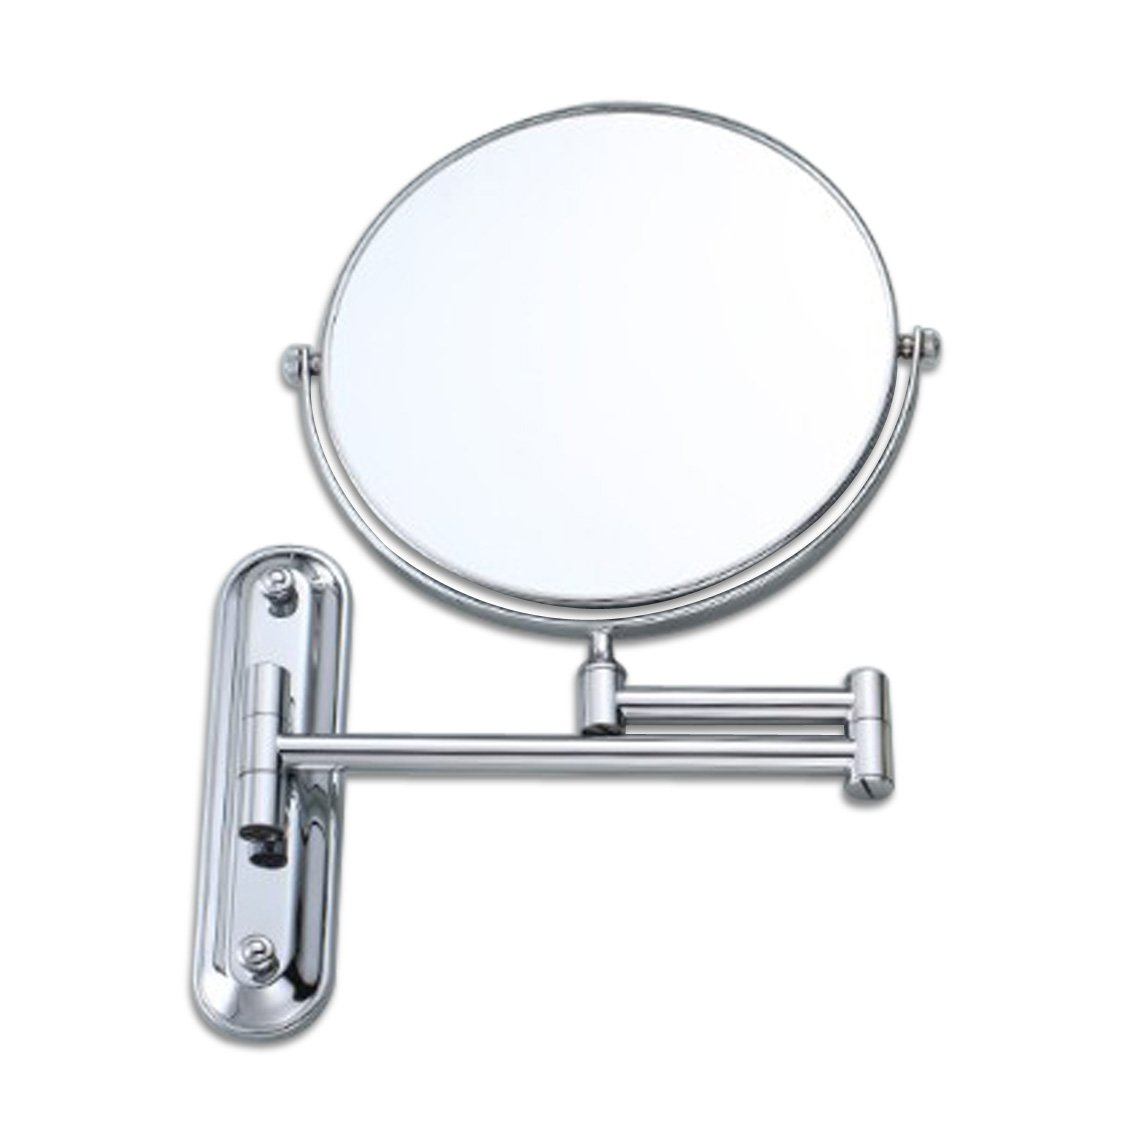 Siker Beauty Mirror Full Copper Wall-Mounted Vanity Mirror Foldable Rotating Bathroom Three Times Magnified Make-up Mirror Eight inches 8801